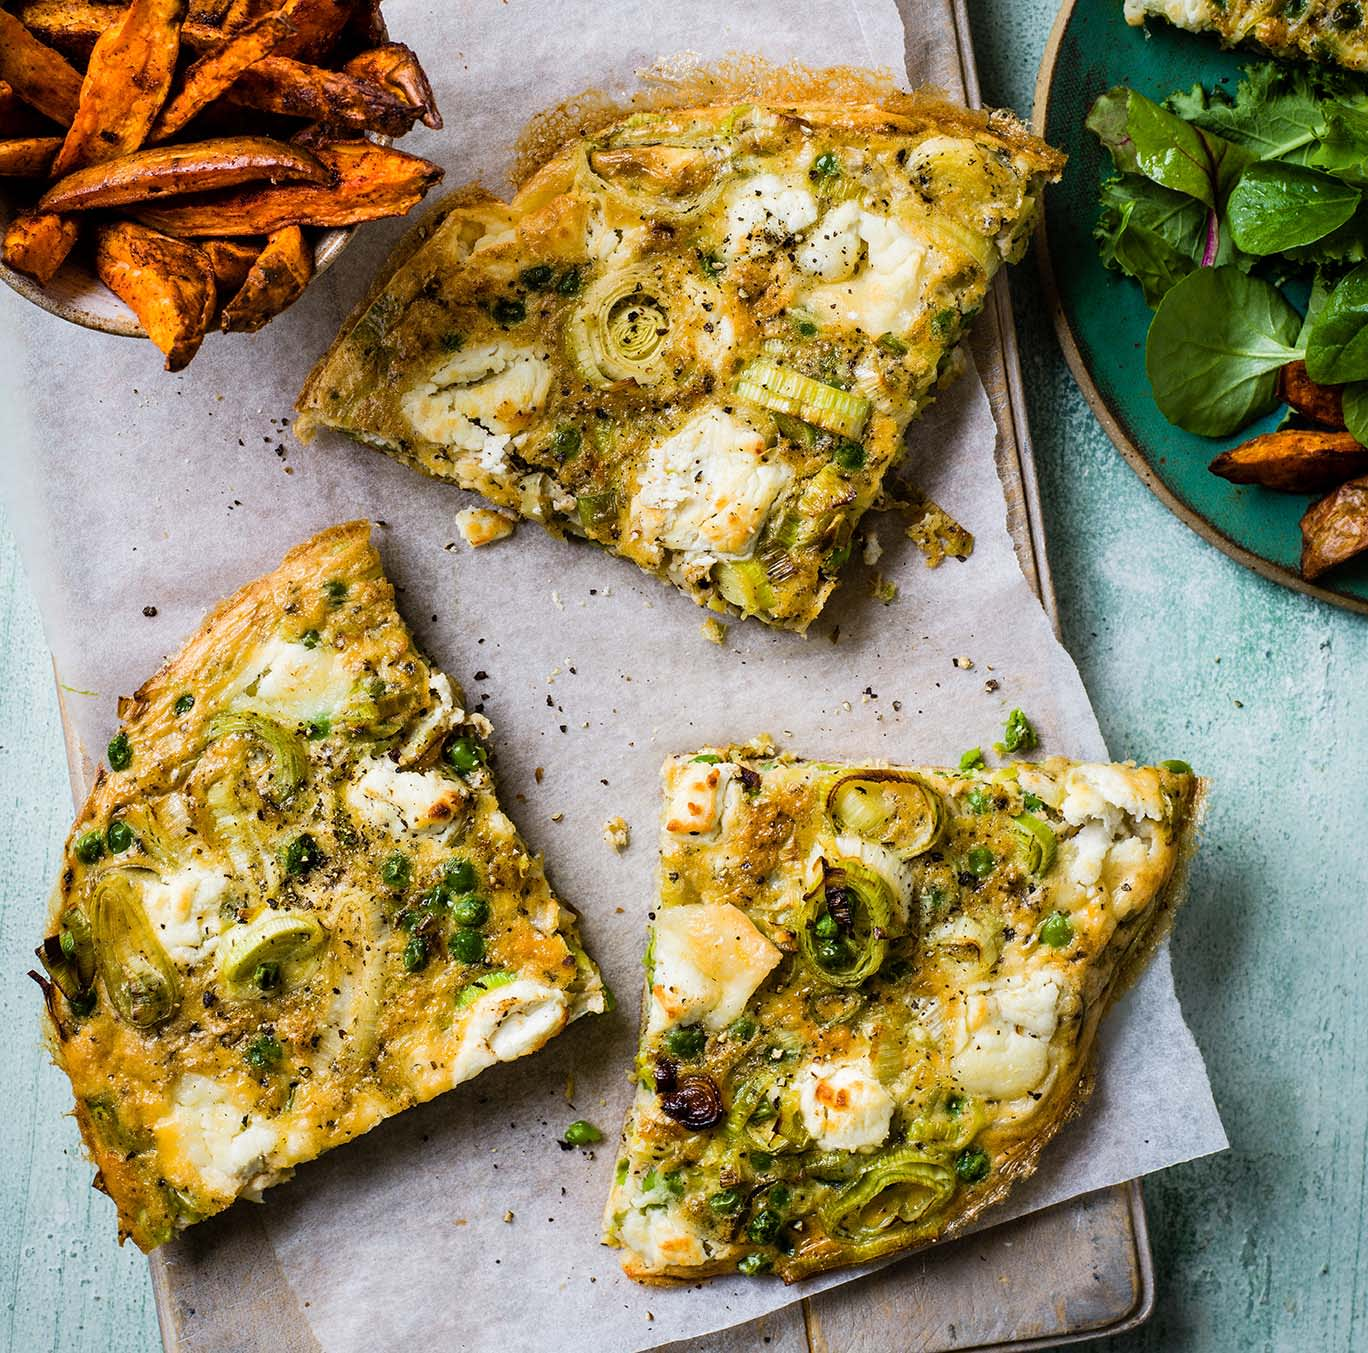 Photo of Baked pea, leek & goat's cheese omelette by WW